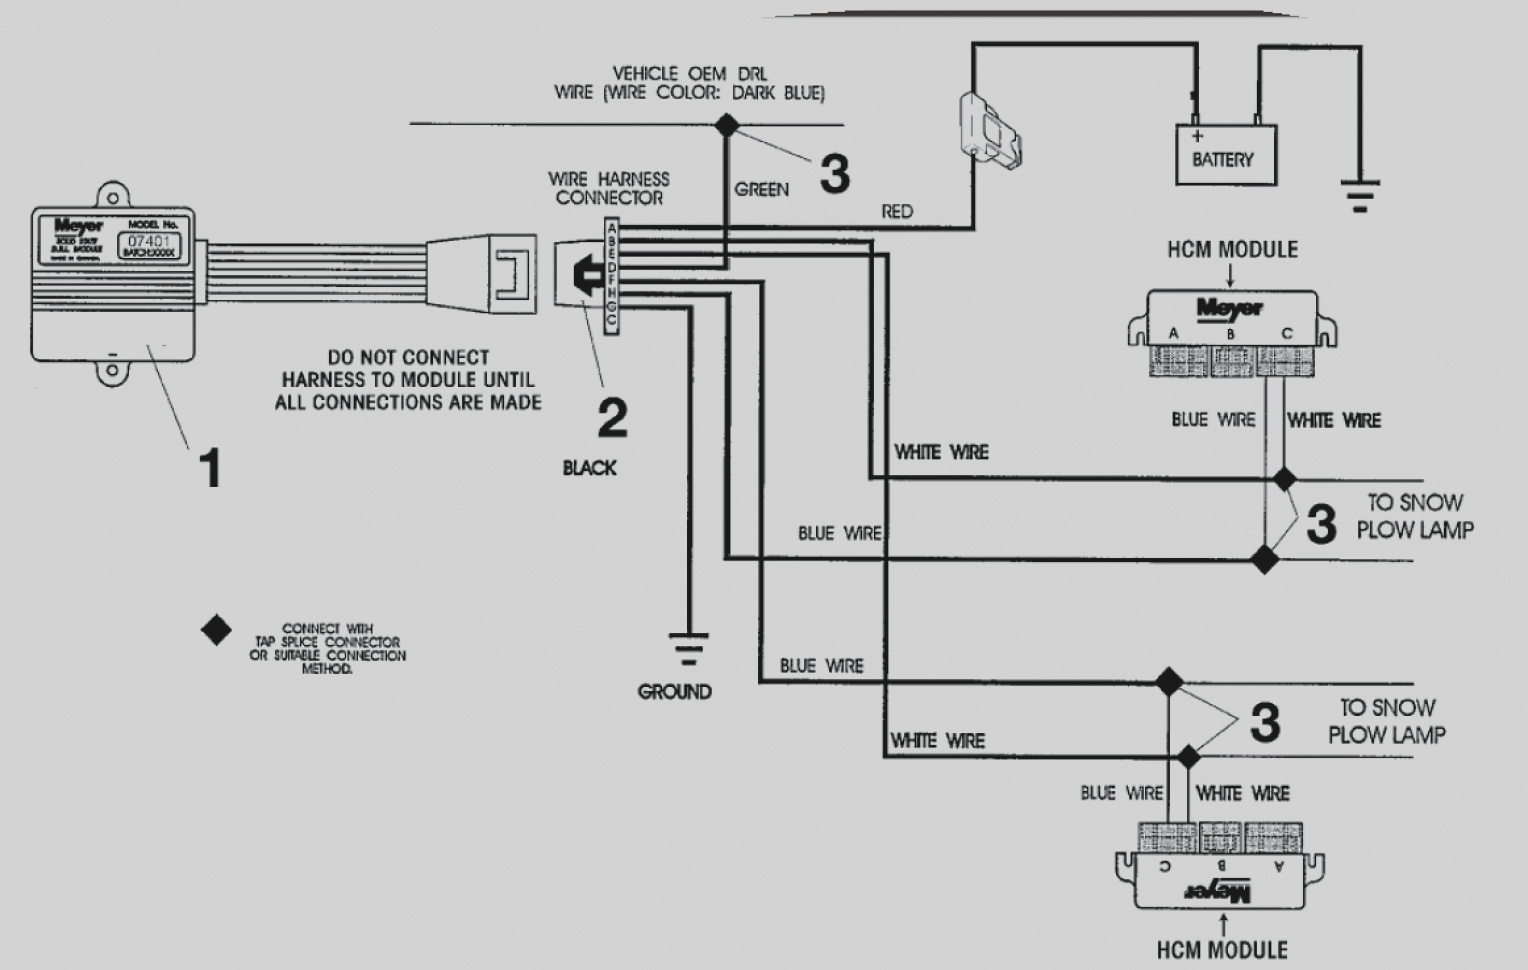 thermodisc wiring diagram Download-Great Sno Way Wiring Diagram B2network Co 12-k